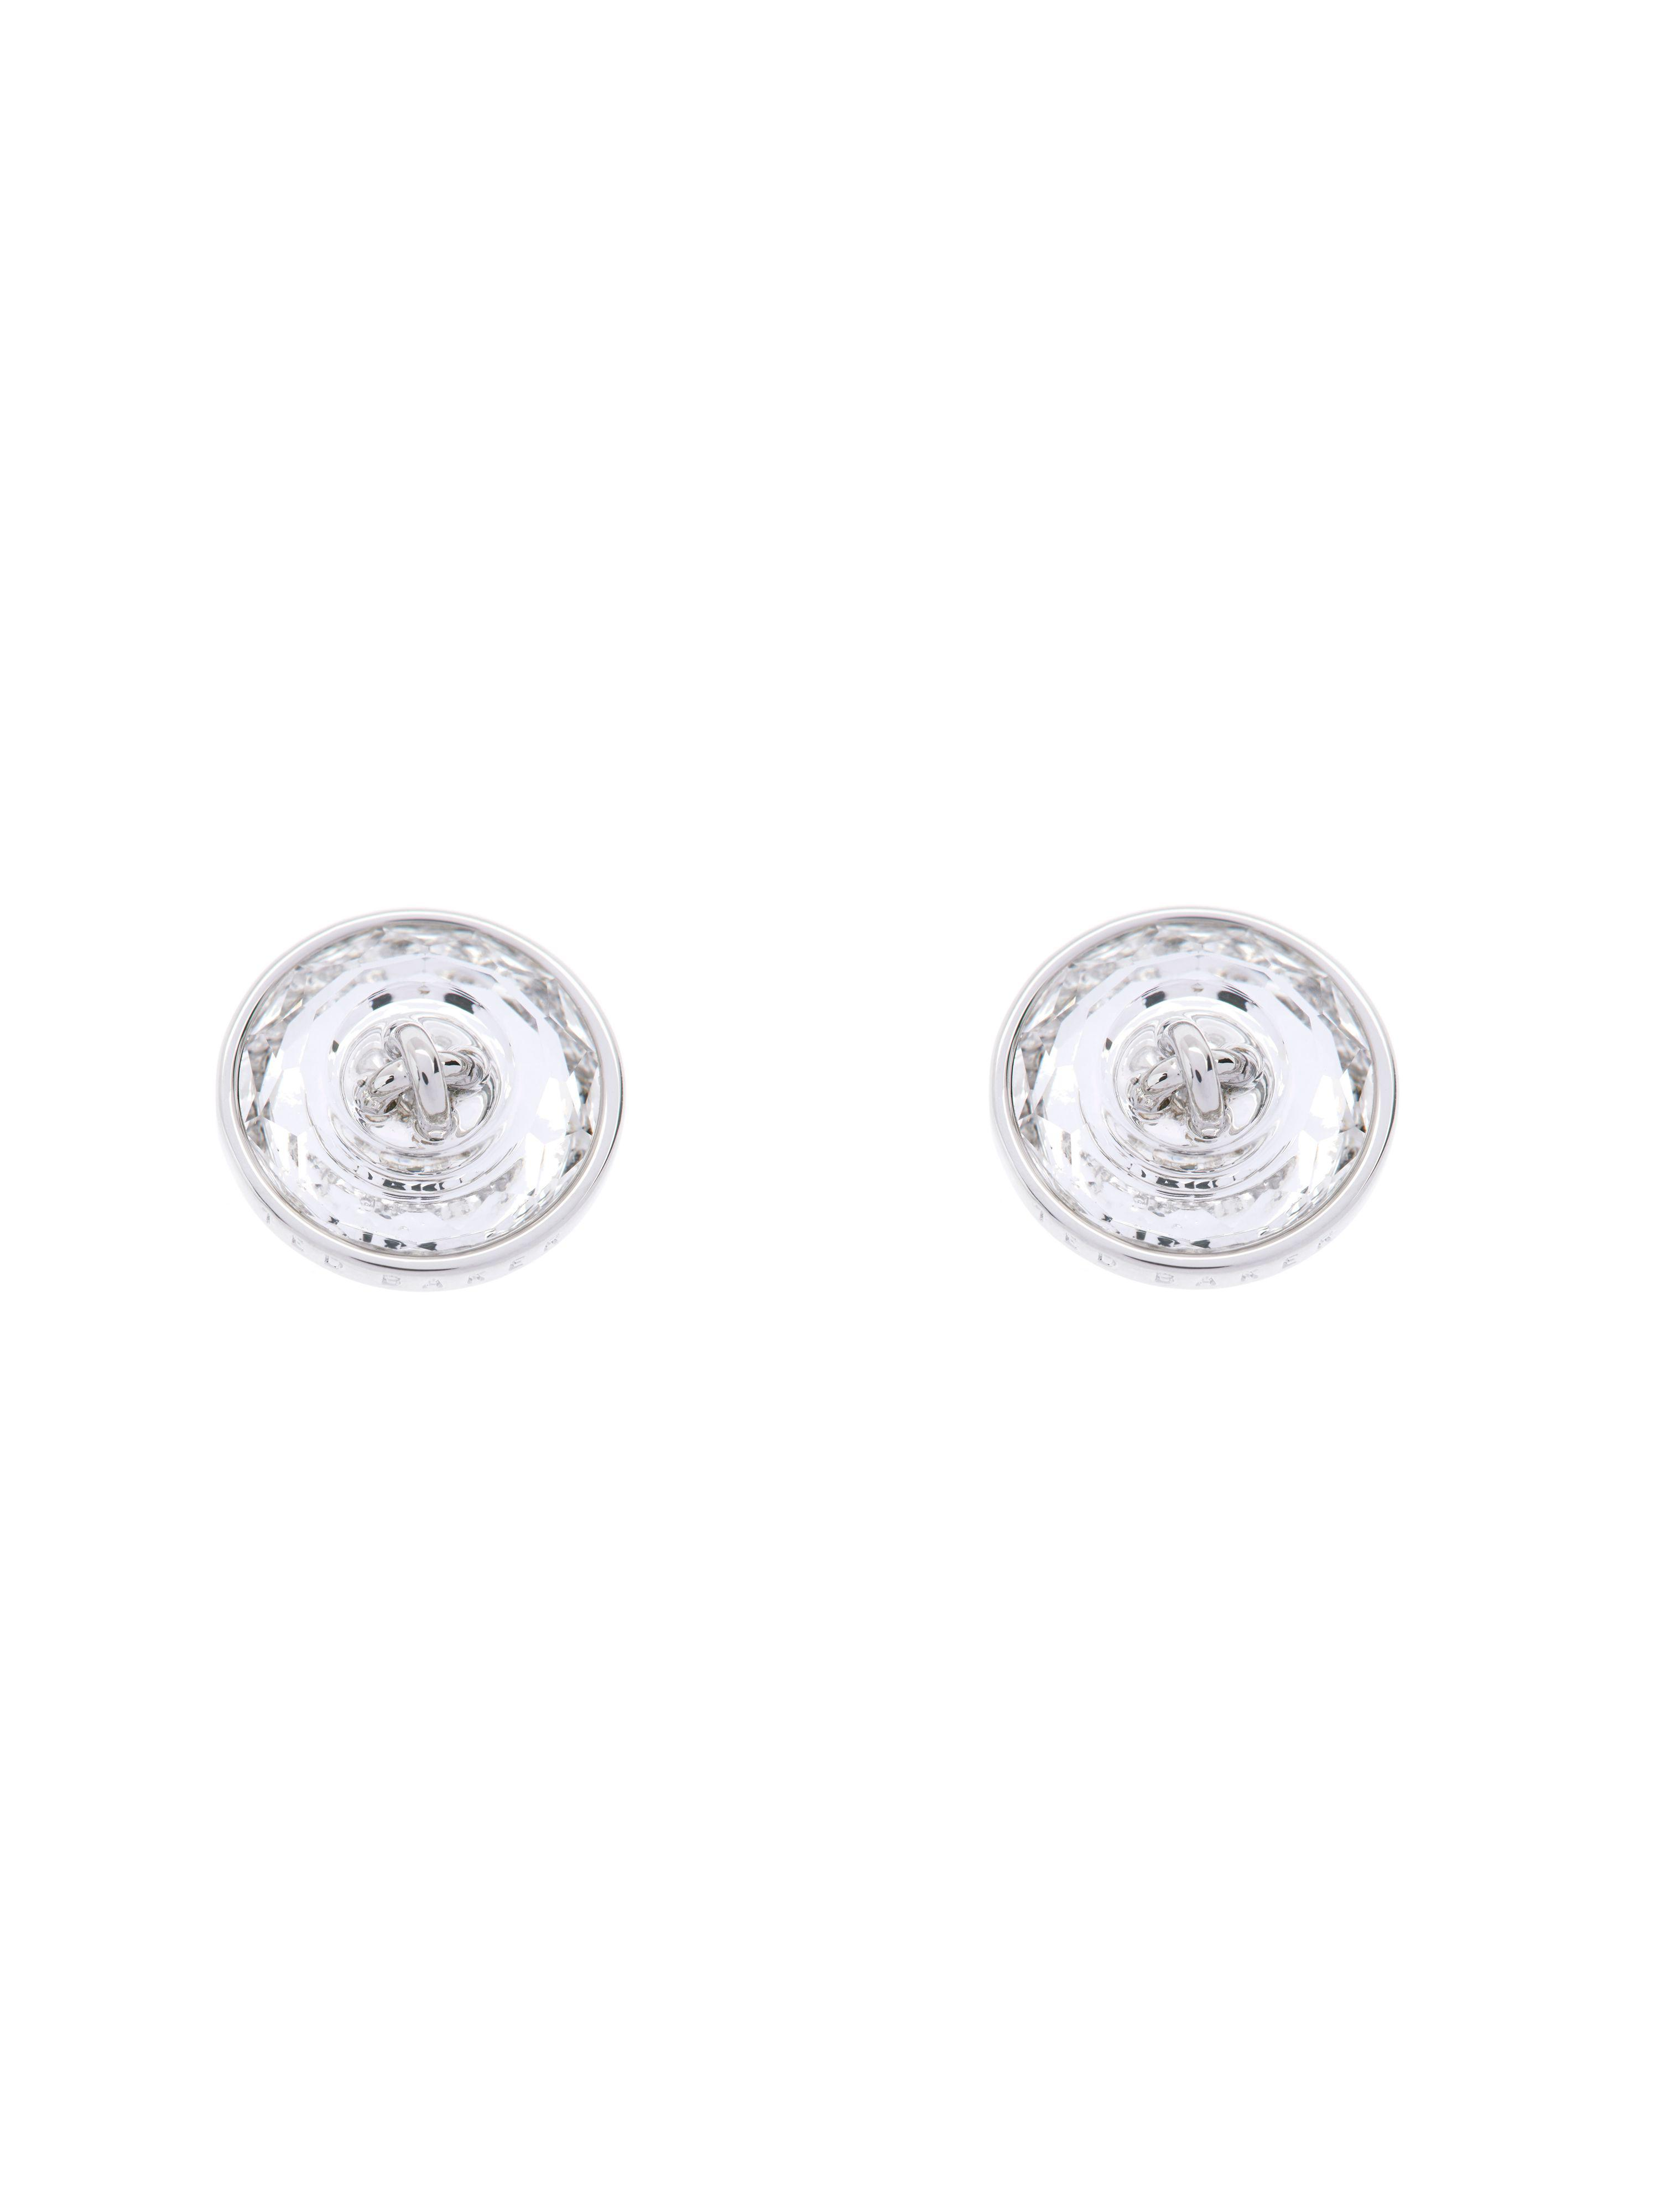 big international piercing world around the earrings image best trends new button